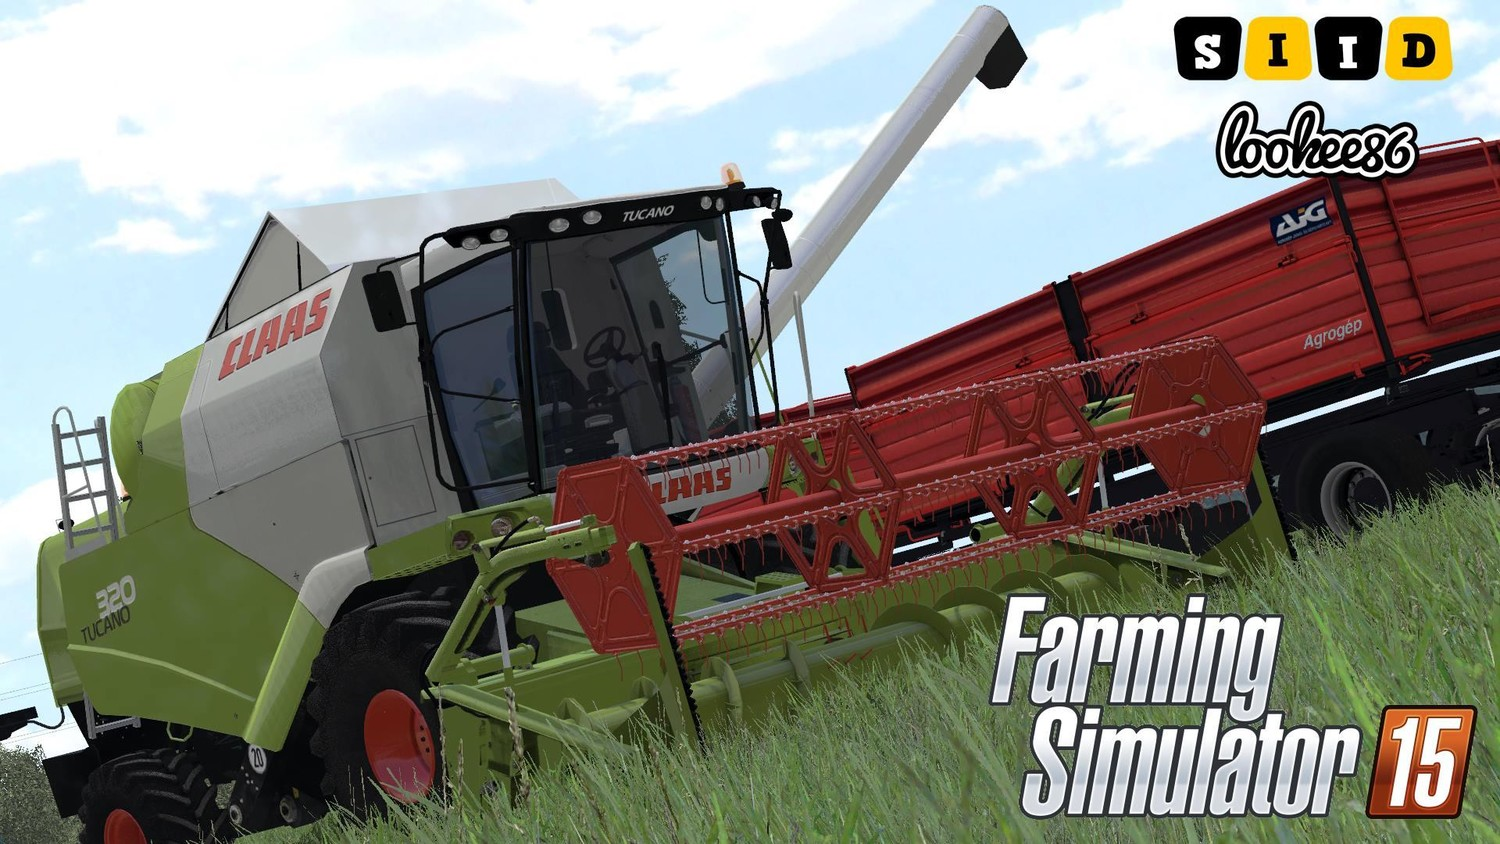 Комбайны для Мод комбайн Claas Tucano 320 v1.0 для Farming Simulator 2015